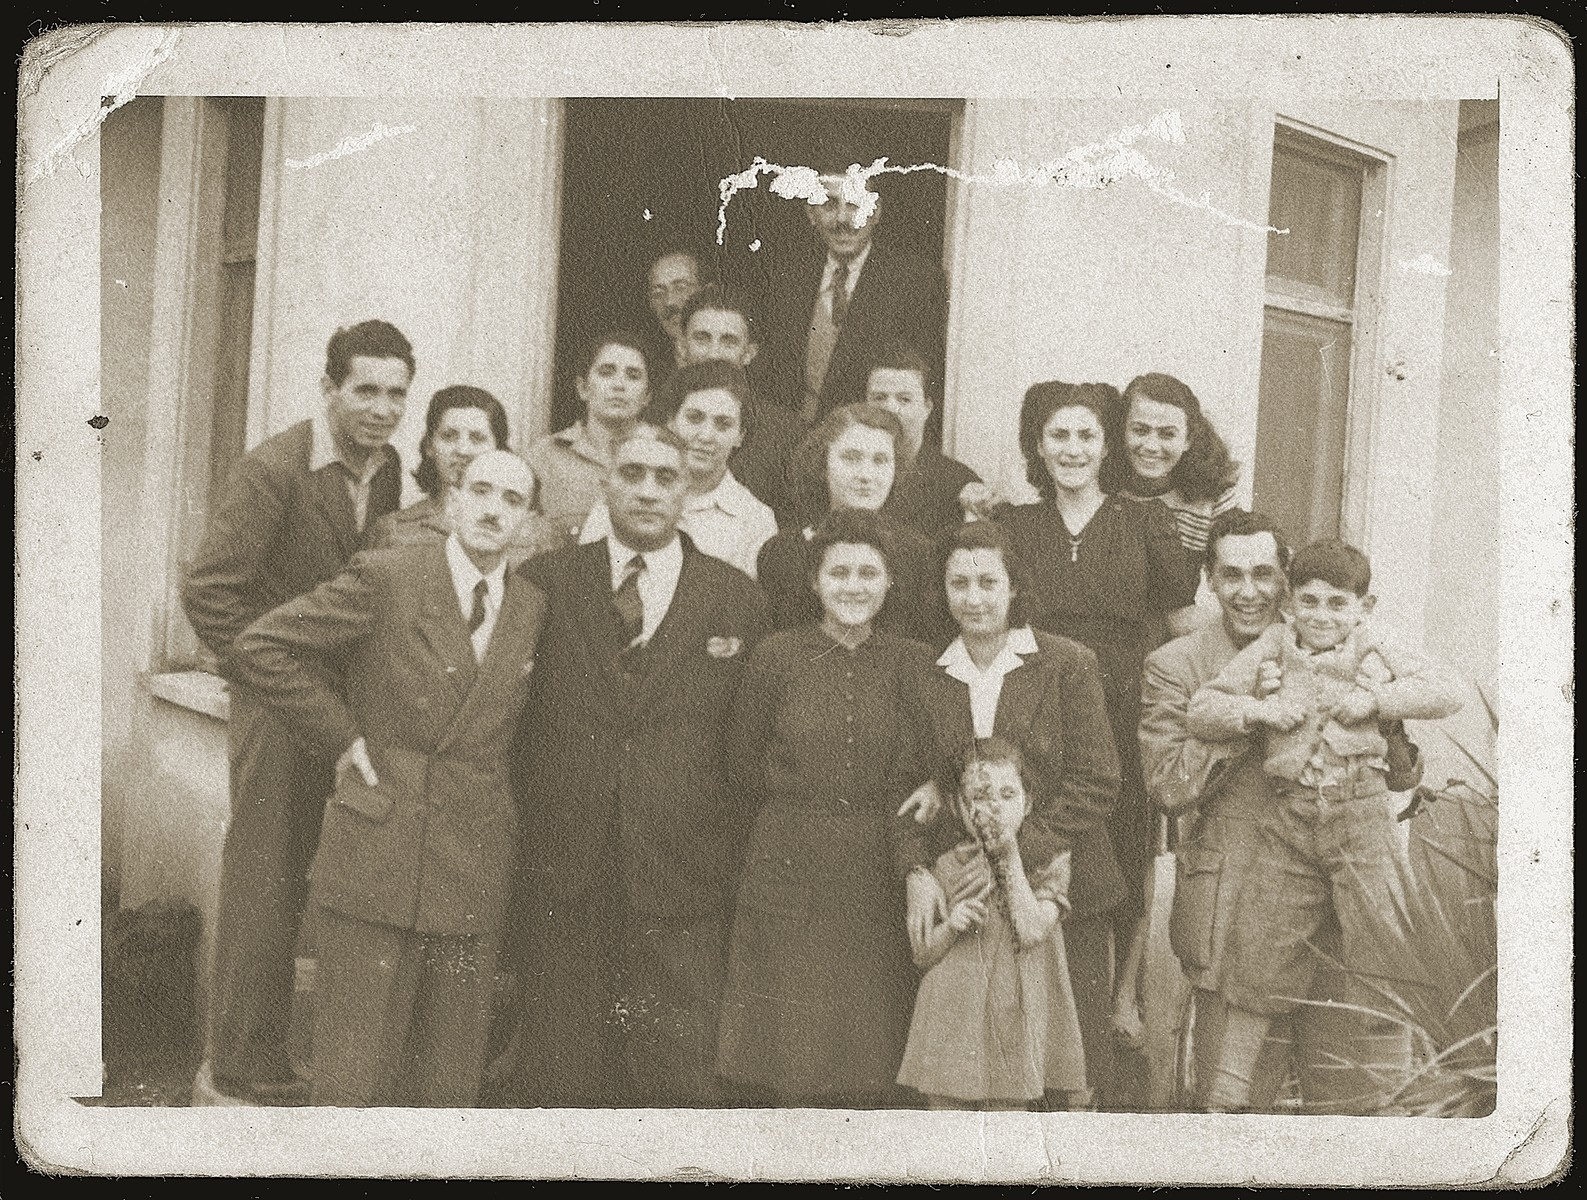 Group portrait of Jewish refugees in front of the home of Neshed Ismail in Tirana after the liberation.    Pictured are Mosa (Moshe) Mandil (top, in the doorway), Gabriela Mandil (center, middle row),Irena (front) and Gavra Mandil (at the far right) and Neshed Ismail (far left).  Also pictured are Mr. and Mrs Ruchvarger; Mr. and Mrs. Sabitai Gershon and their daughter Stella; Yosef, Finitza and Rozica Ben-Yosif; and Mr. and Mrs. Naftali Komforti